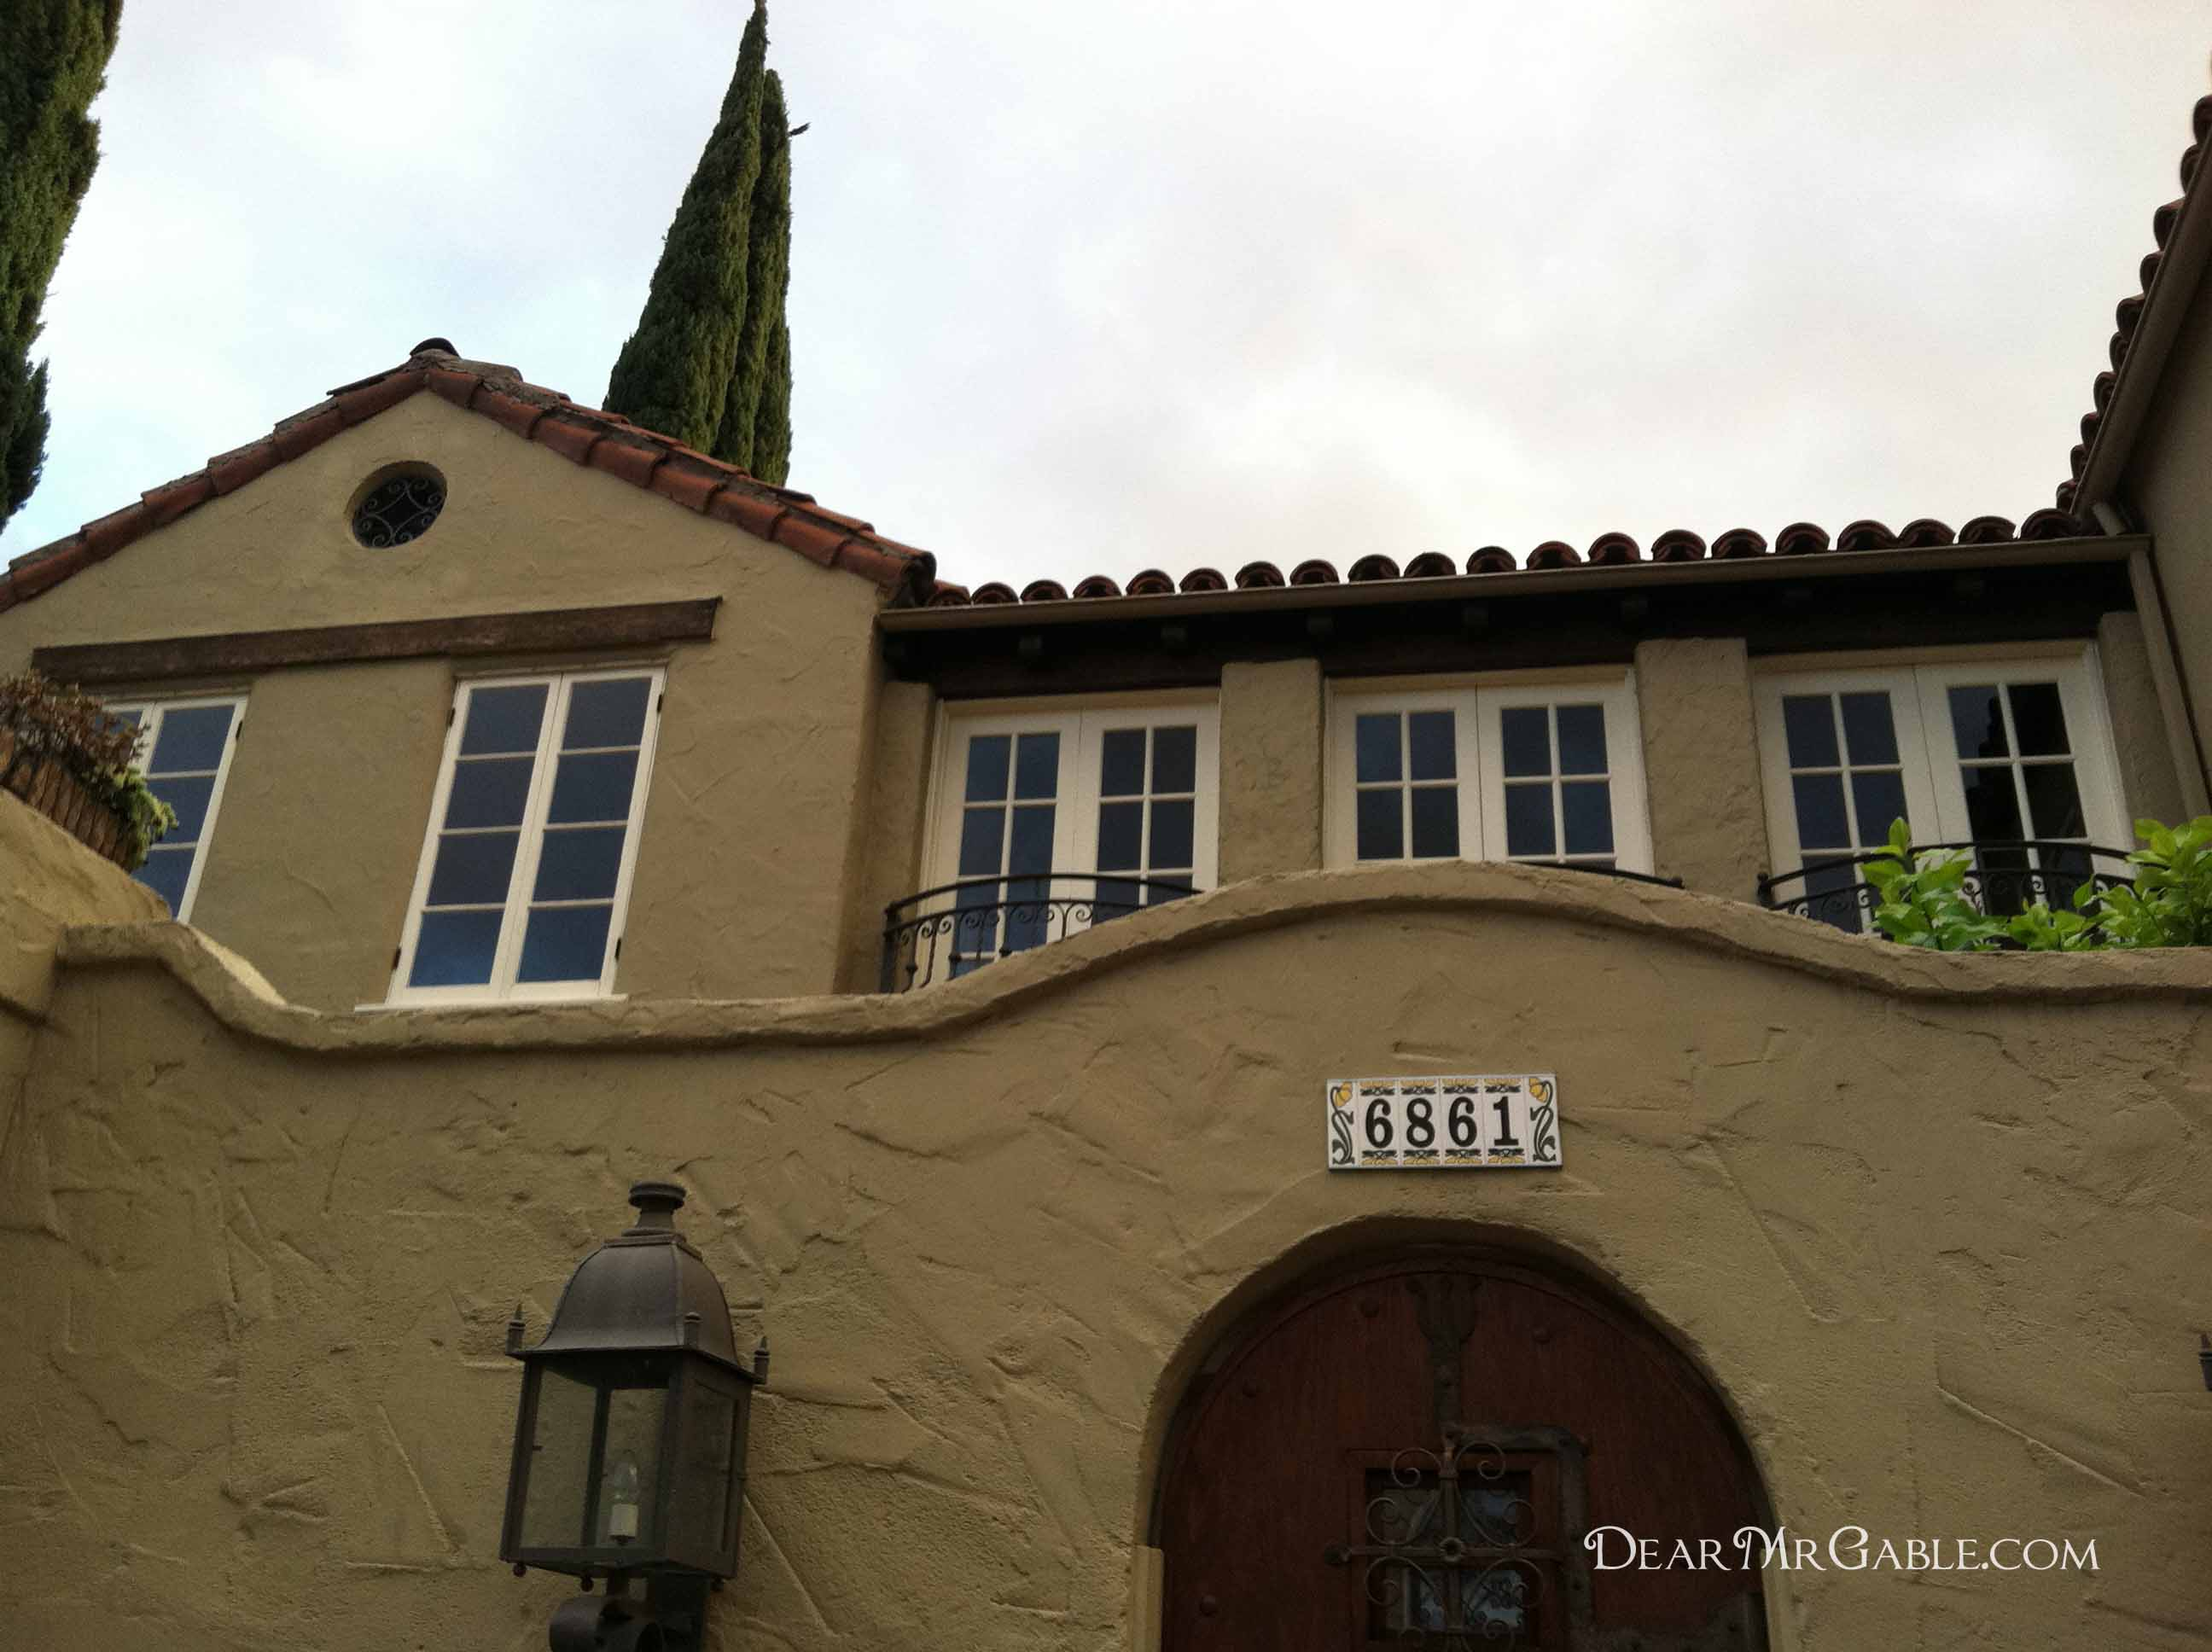 hollywood} carole lombard lived here – dear mr. gable